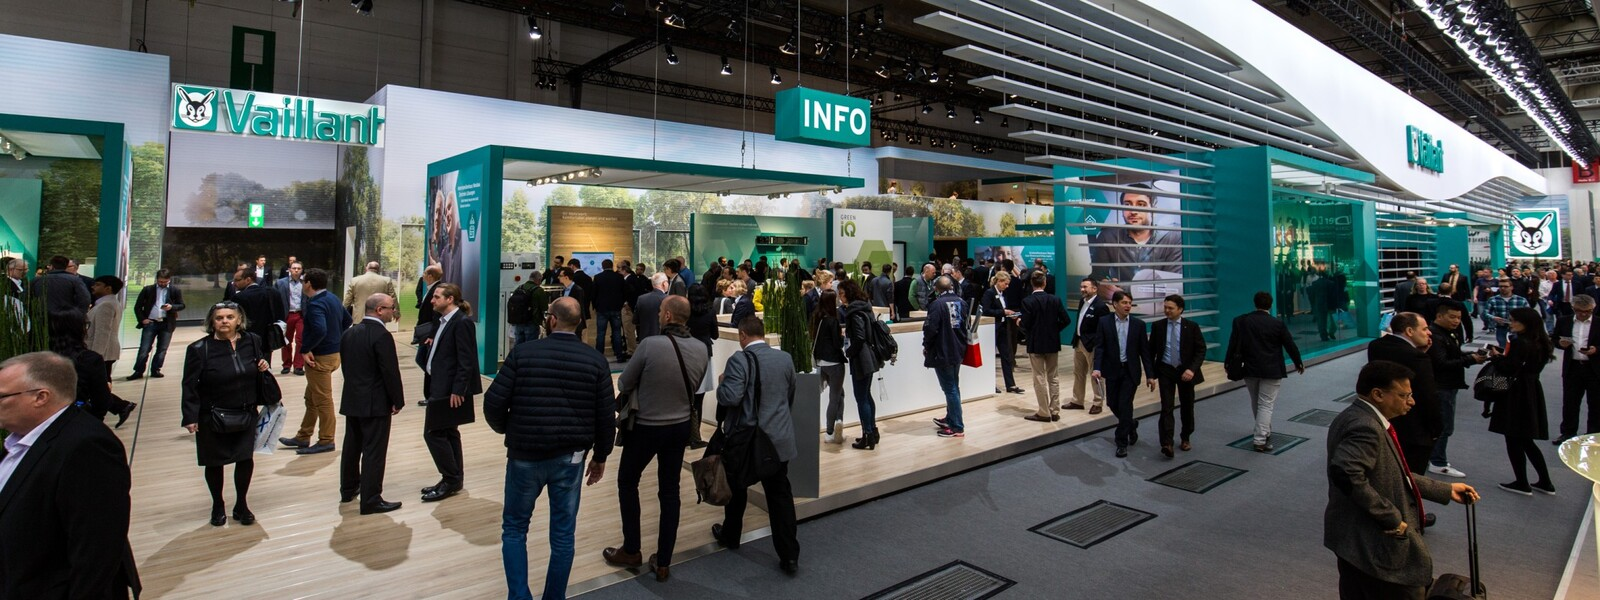 https://www.vaillant-group.com/newsroom/pressemitteilungen/2017/ish-2017/firstspirit-1489587103717tff-ish-messestand-preview-01-943950-format-24-9@1600@desktop.jpg